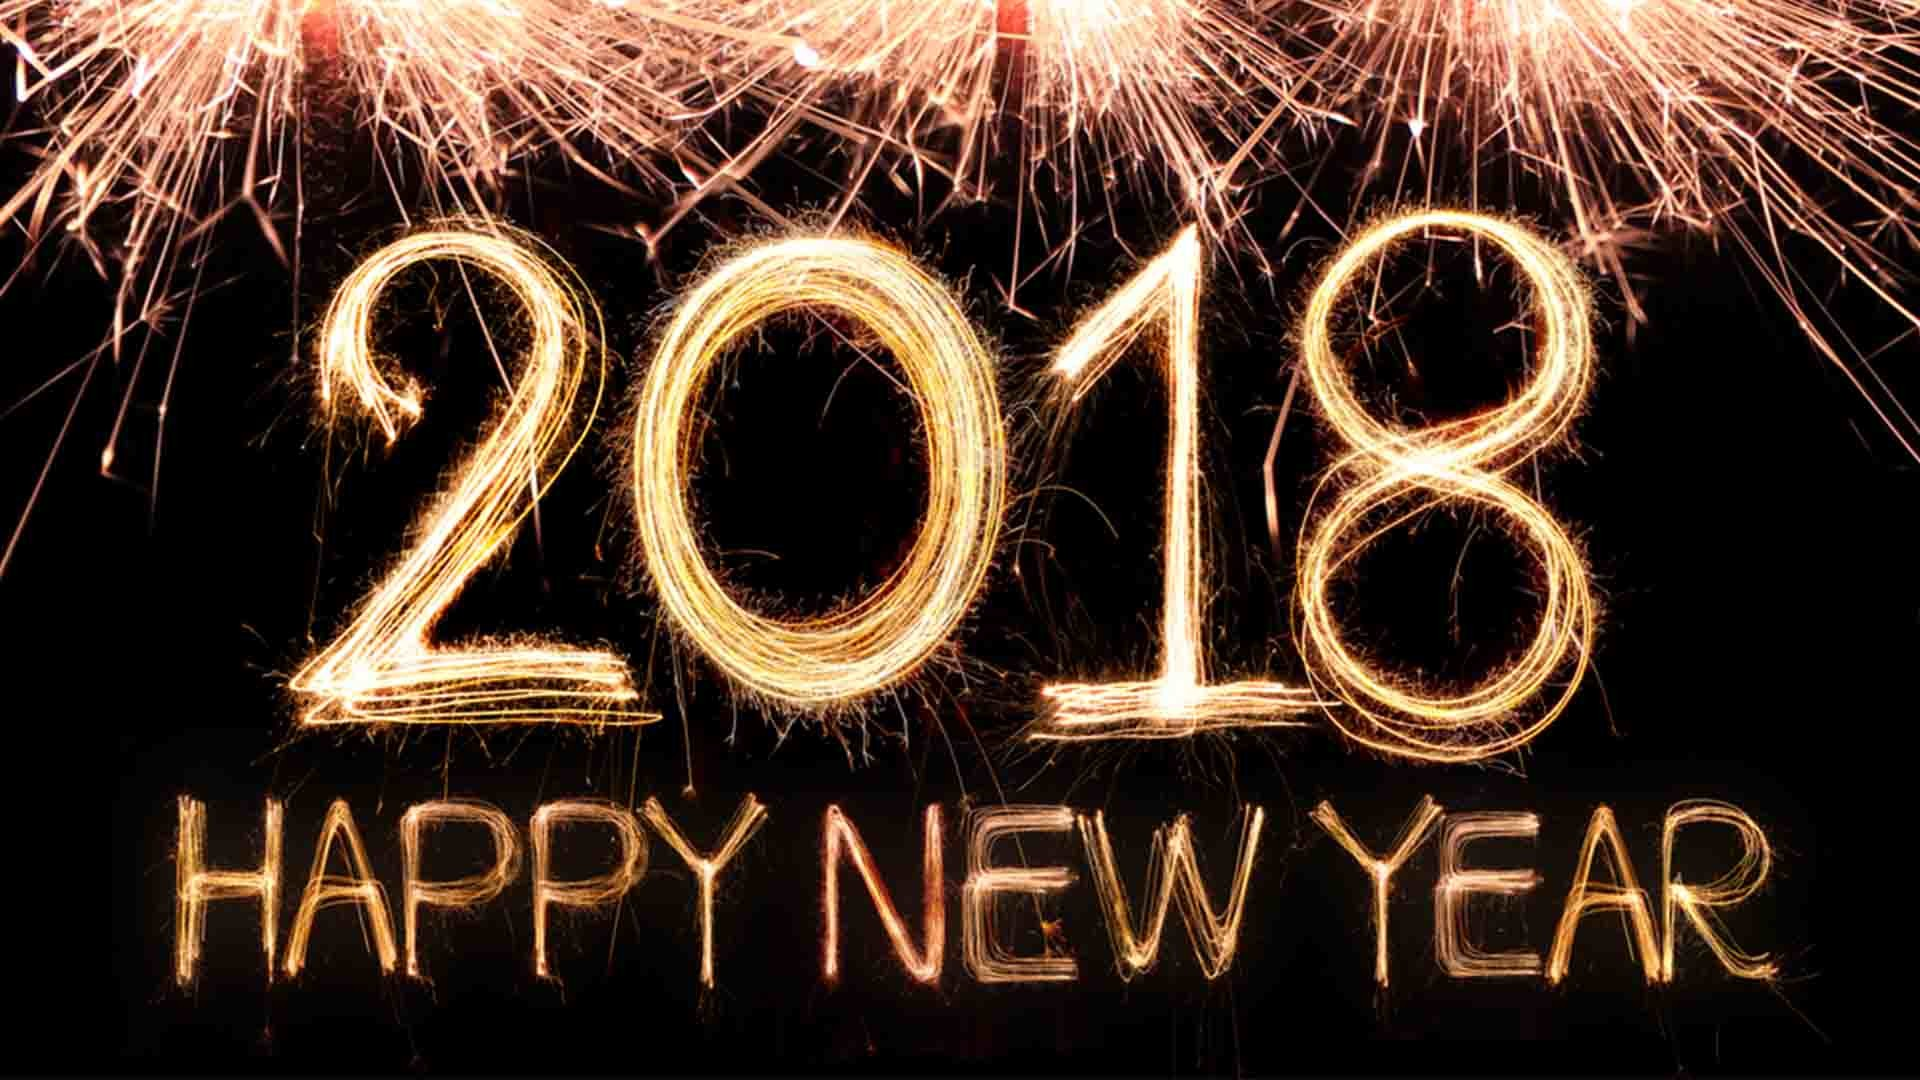 1920x1080 advance happy new year 2018 images download hd new year wallpapers download happy new year 2018